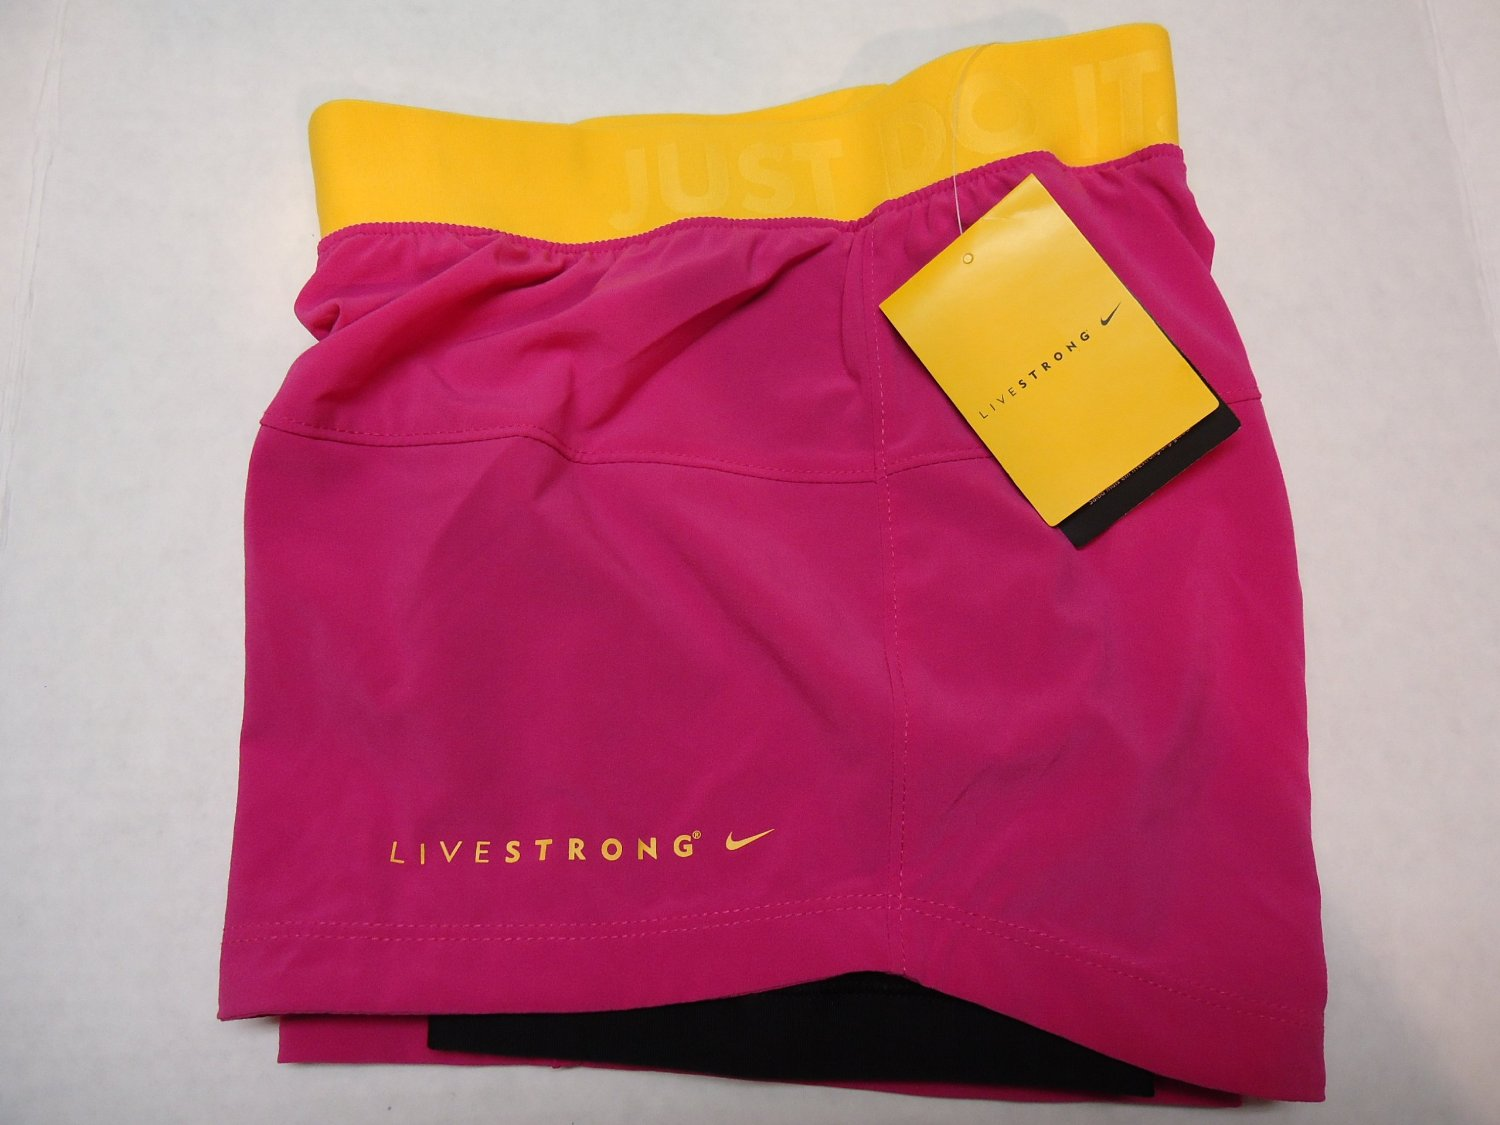 huge selection of f78d1 d9e77 Nike Women s Livestrong Shorts Pink-Yellow  JUST DO IT, X-Small